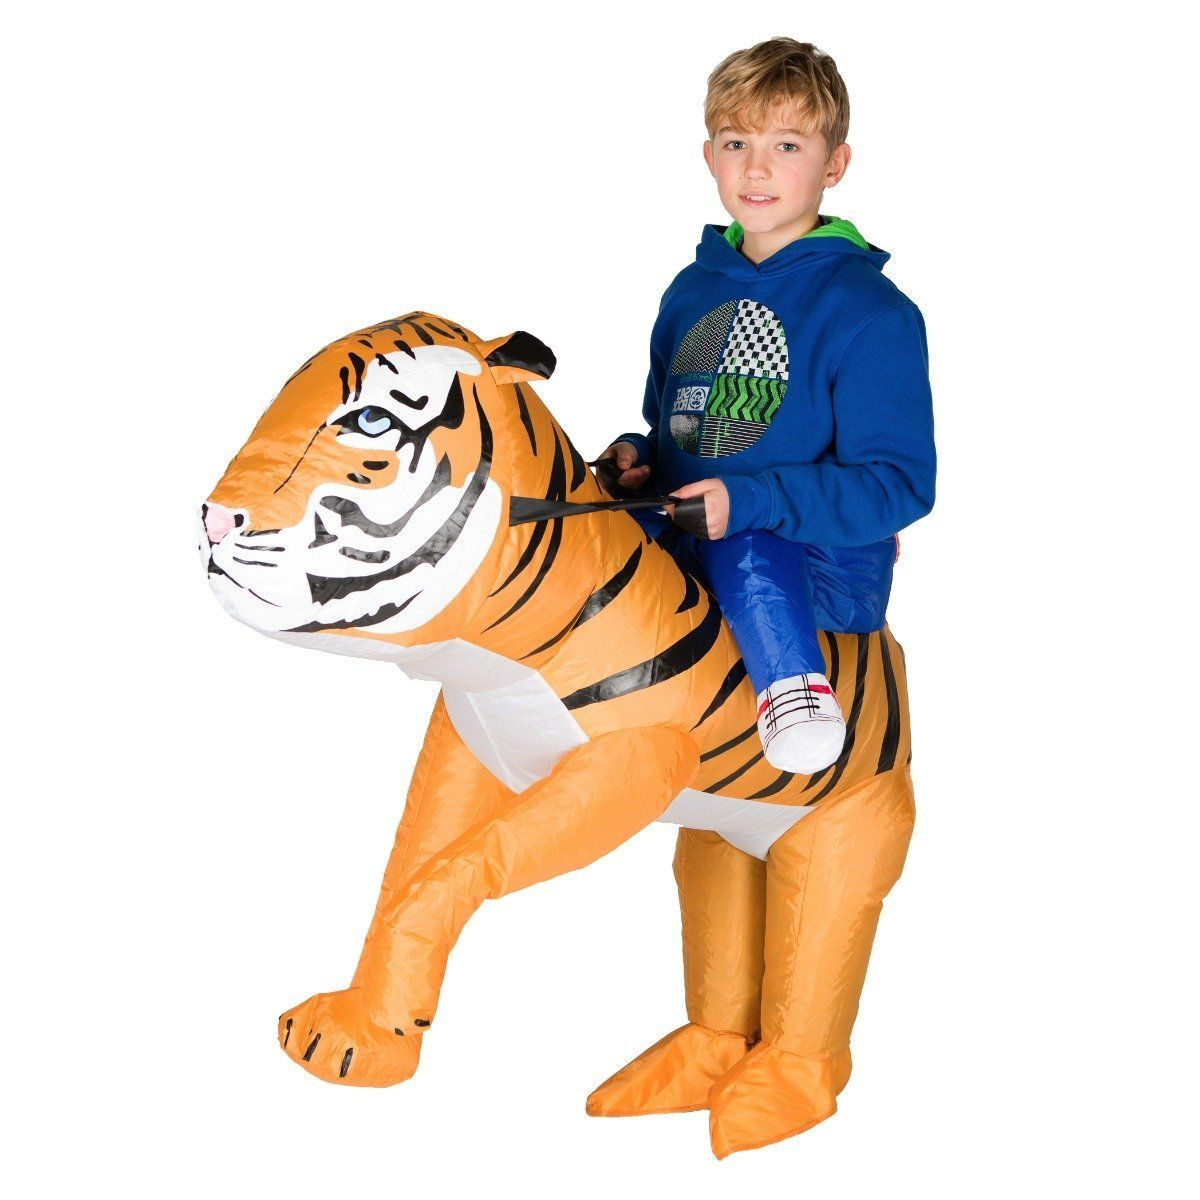 Fancy Dress - Kids Inflatable Tiger Costume